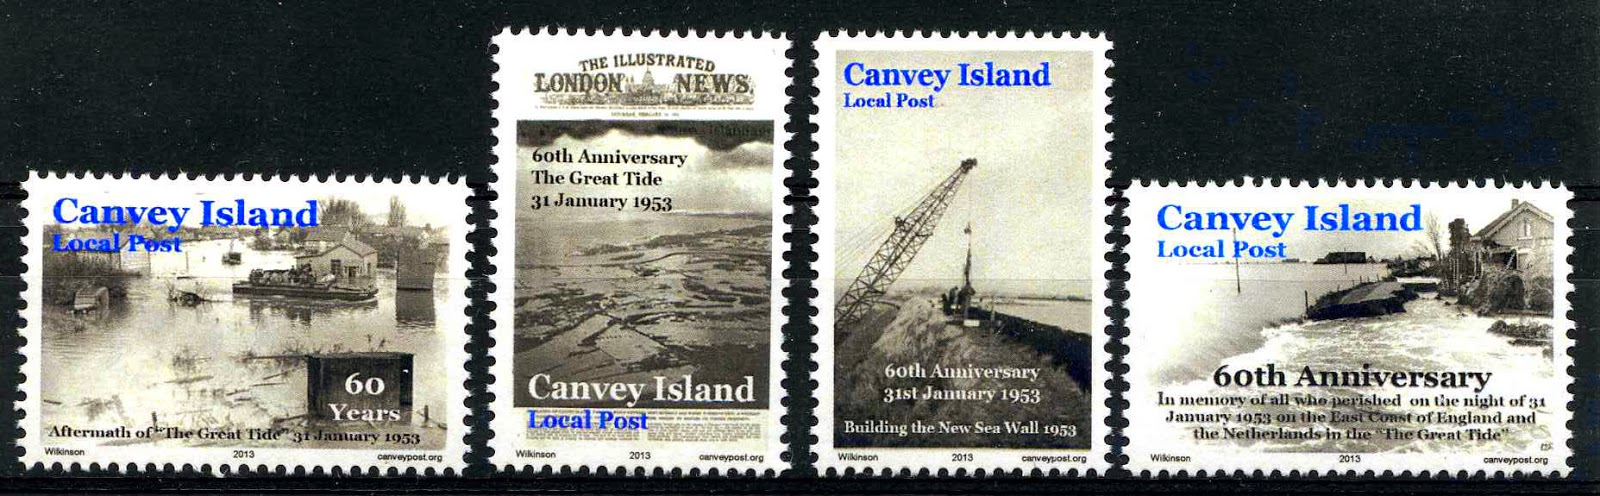 Great Tide 1953 Canvey Island stamp set